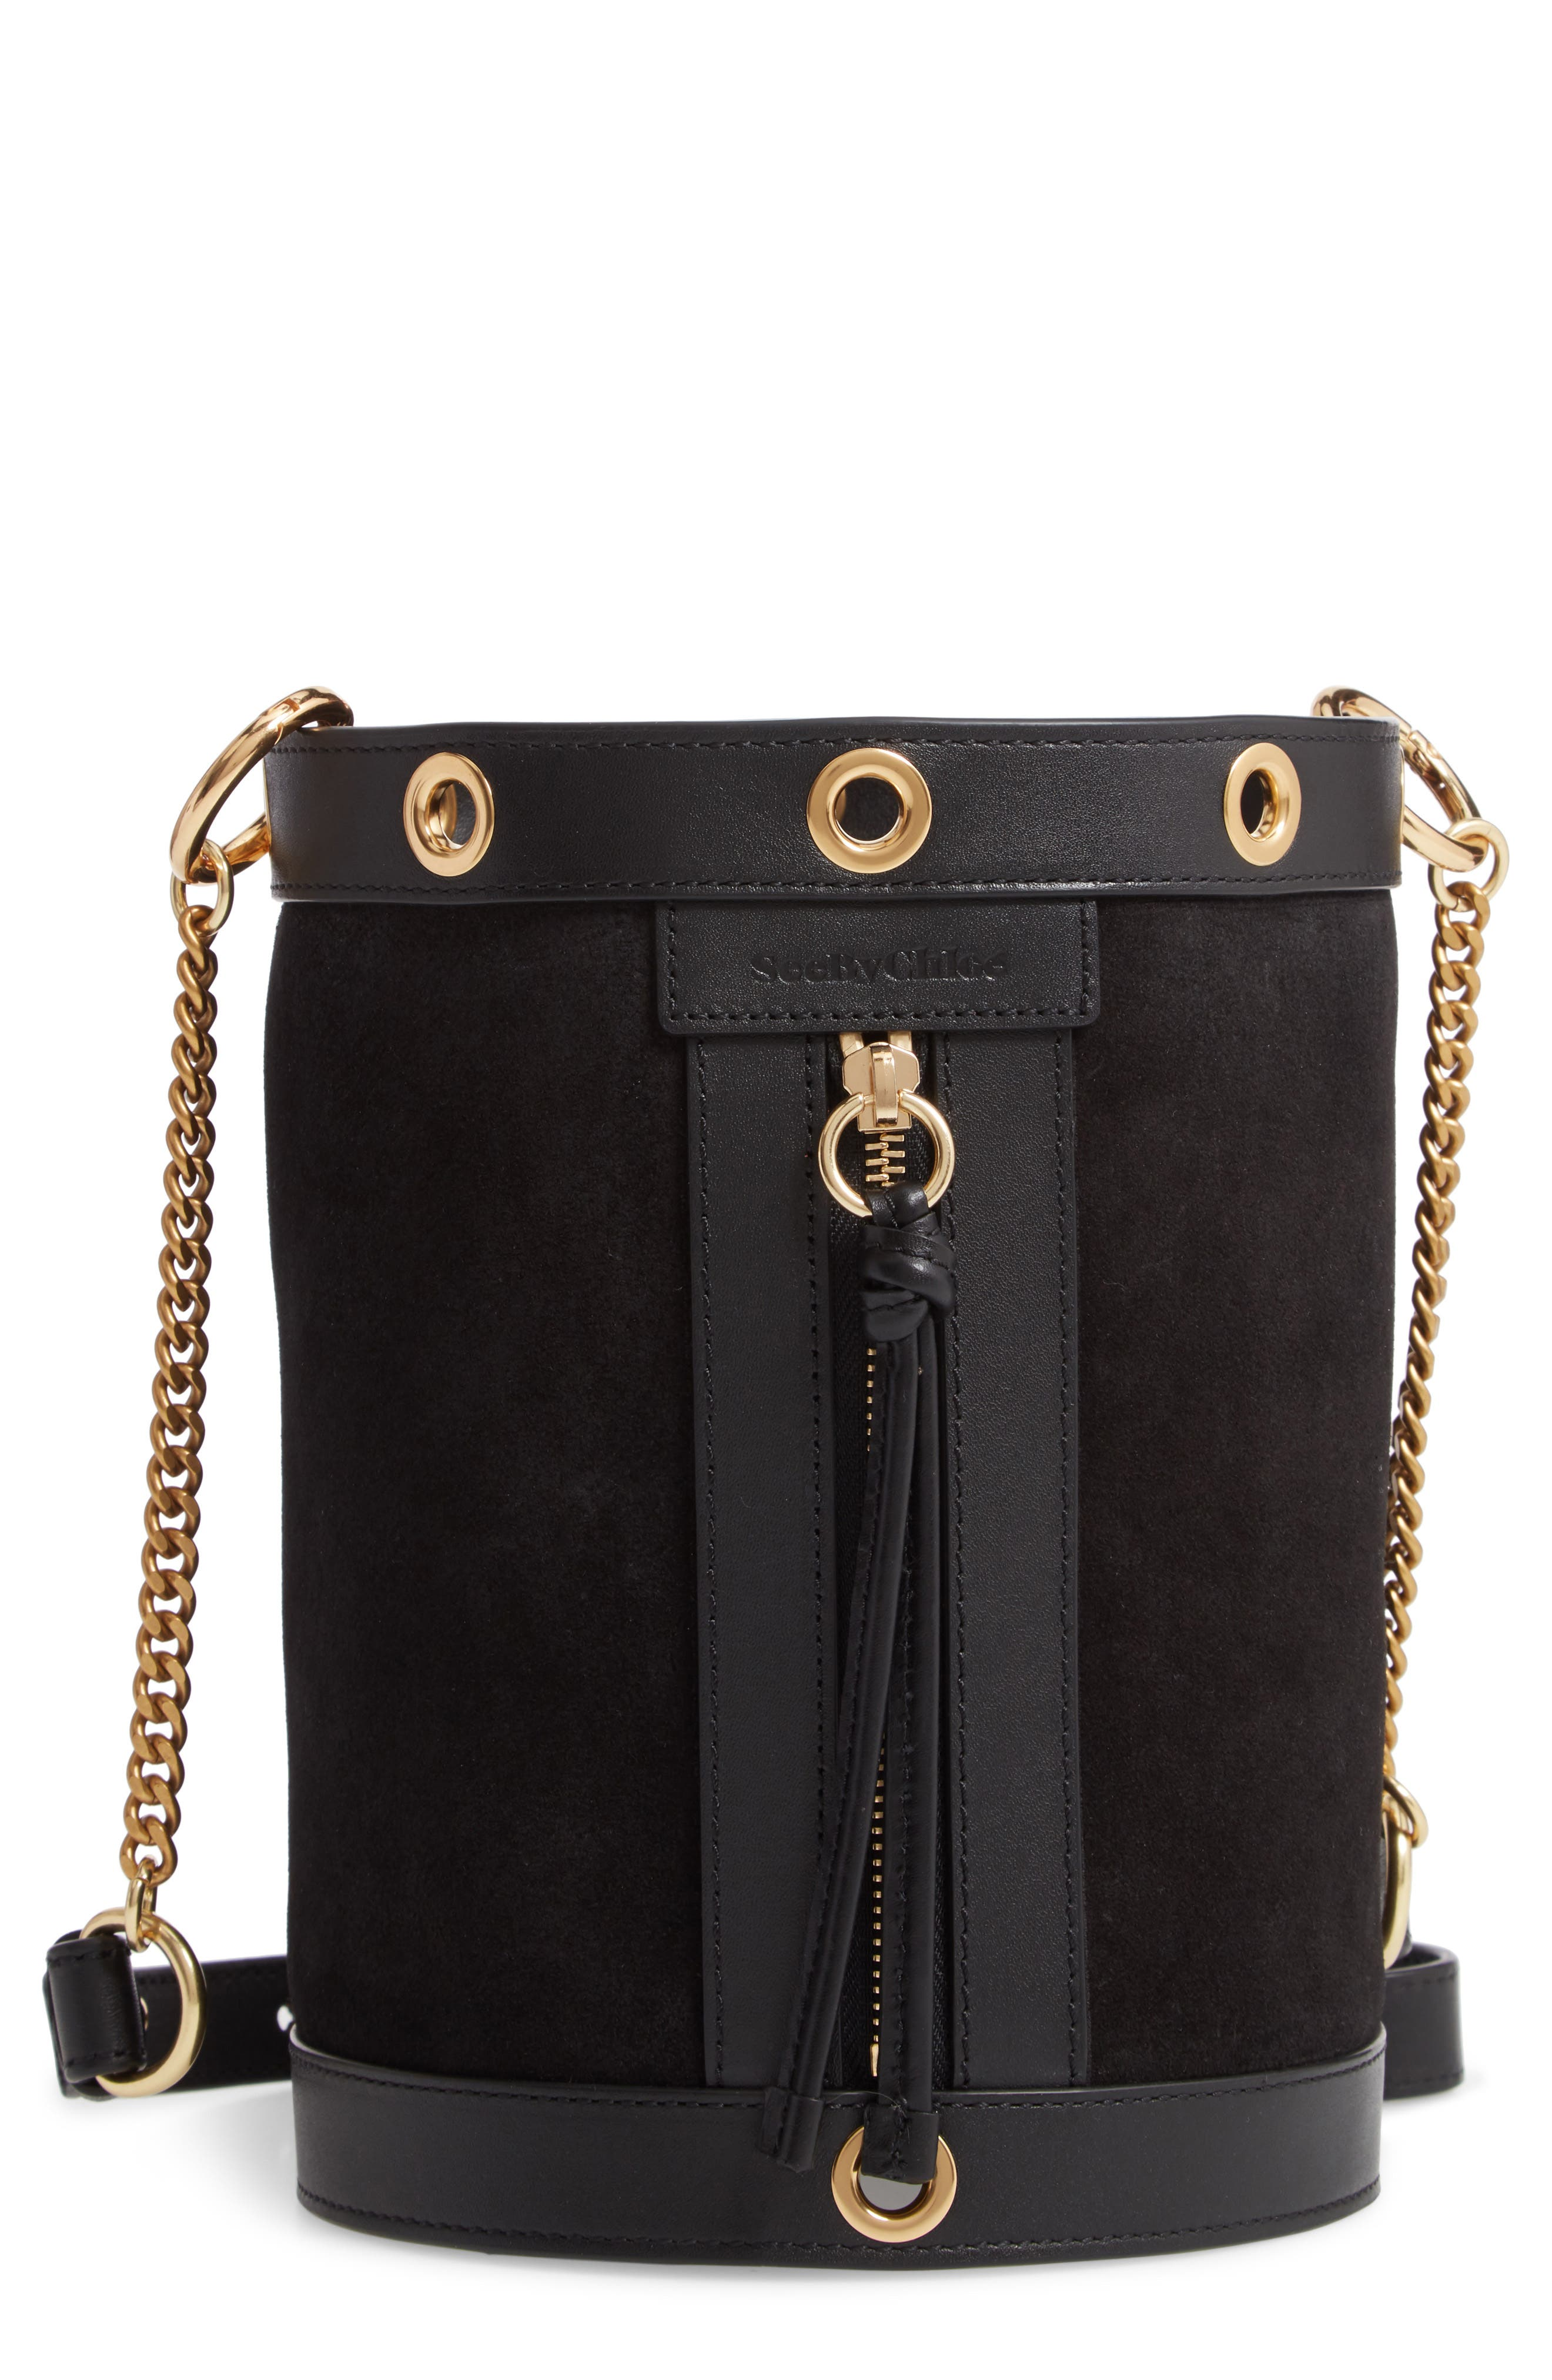 SEE BY CHLOÉ Debbie Leather Bucket Bag, Main, color, 001